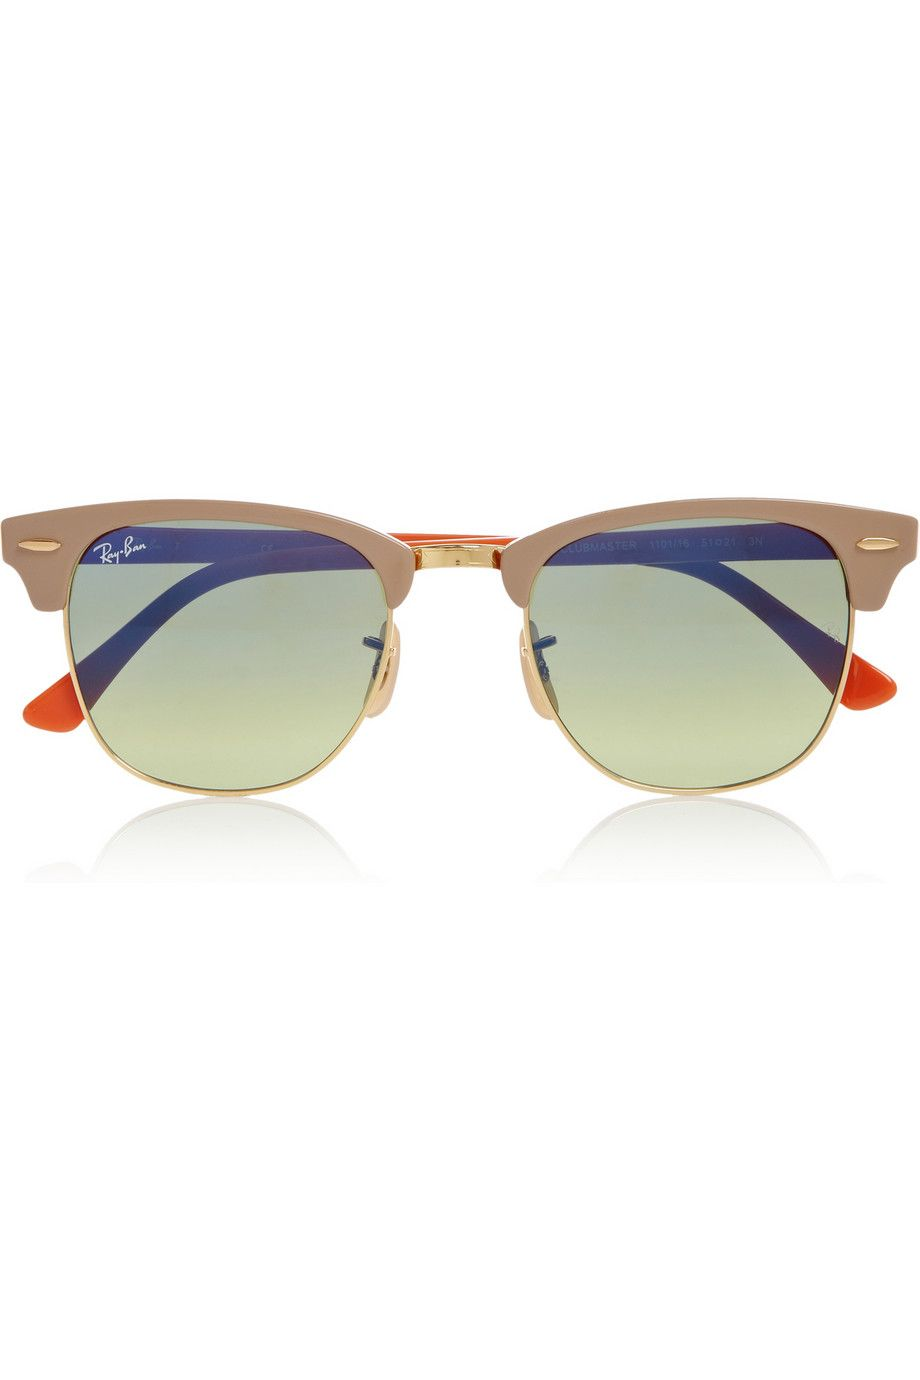 Ray-Ban - Clubmaster half-frame acetate sunglasses